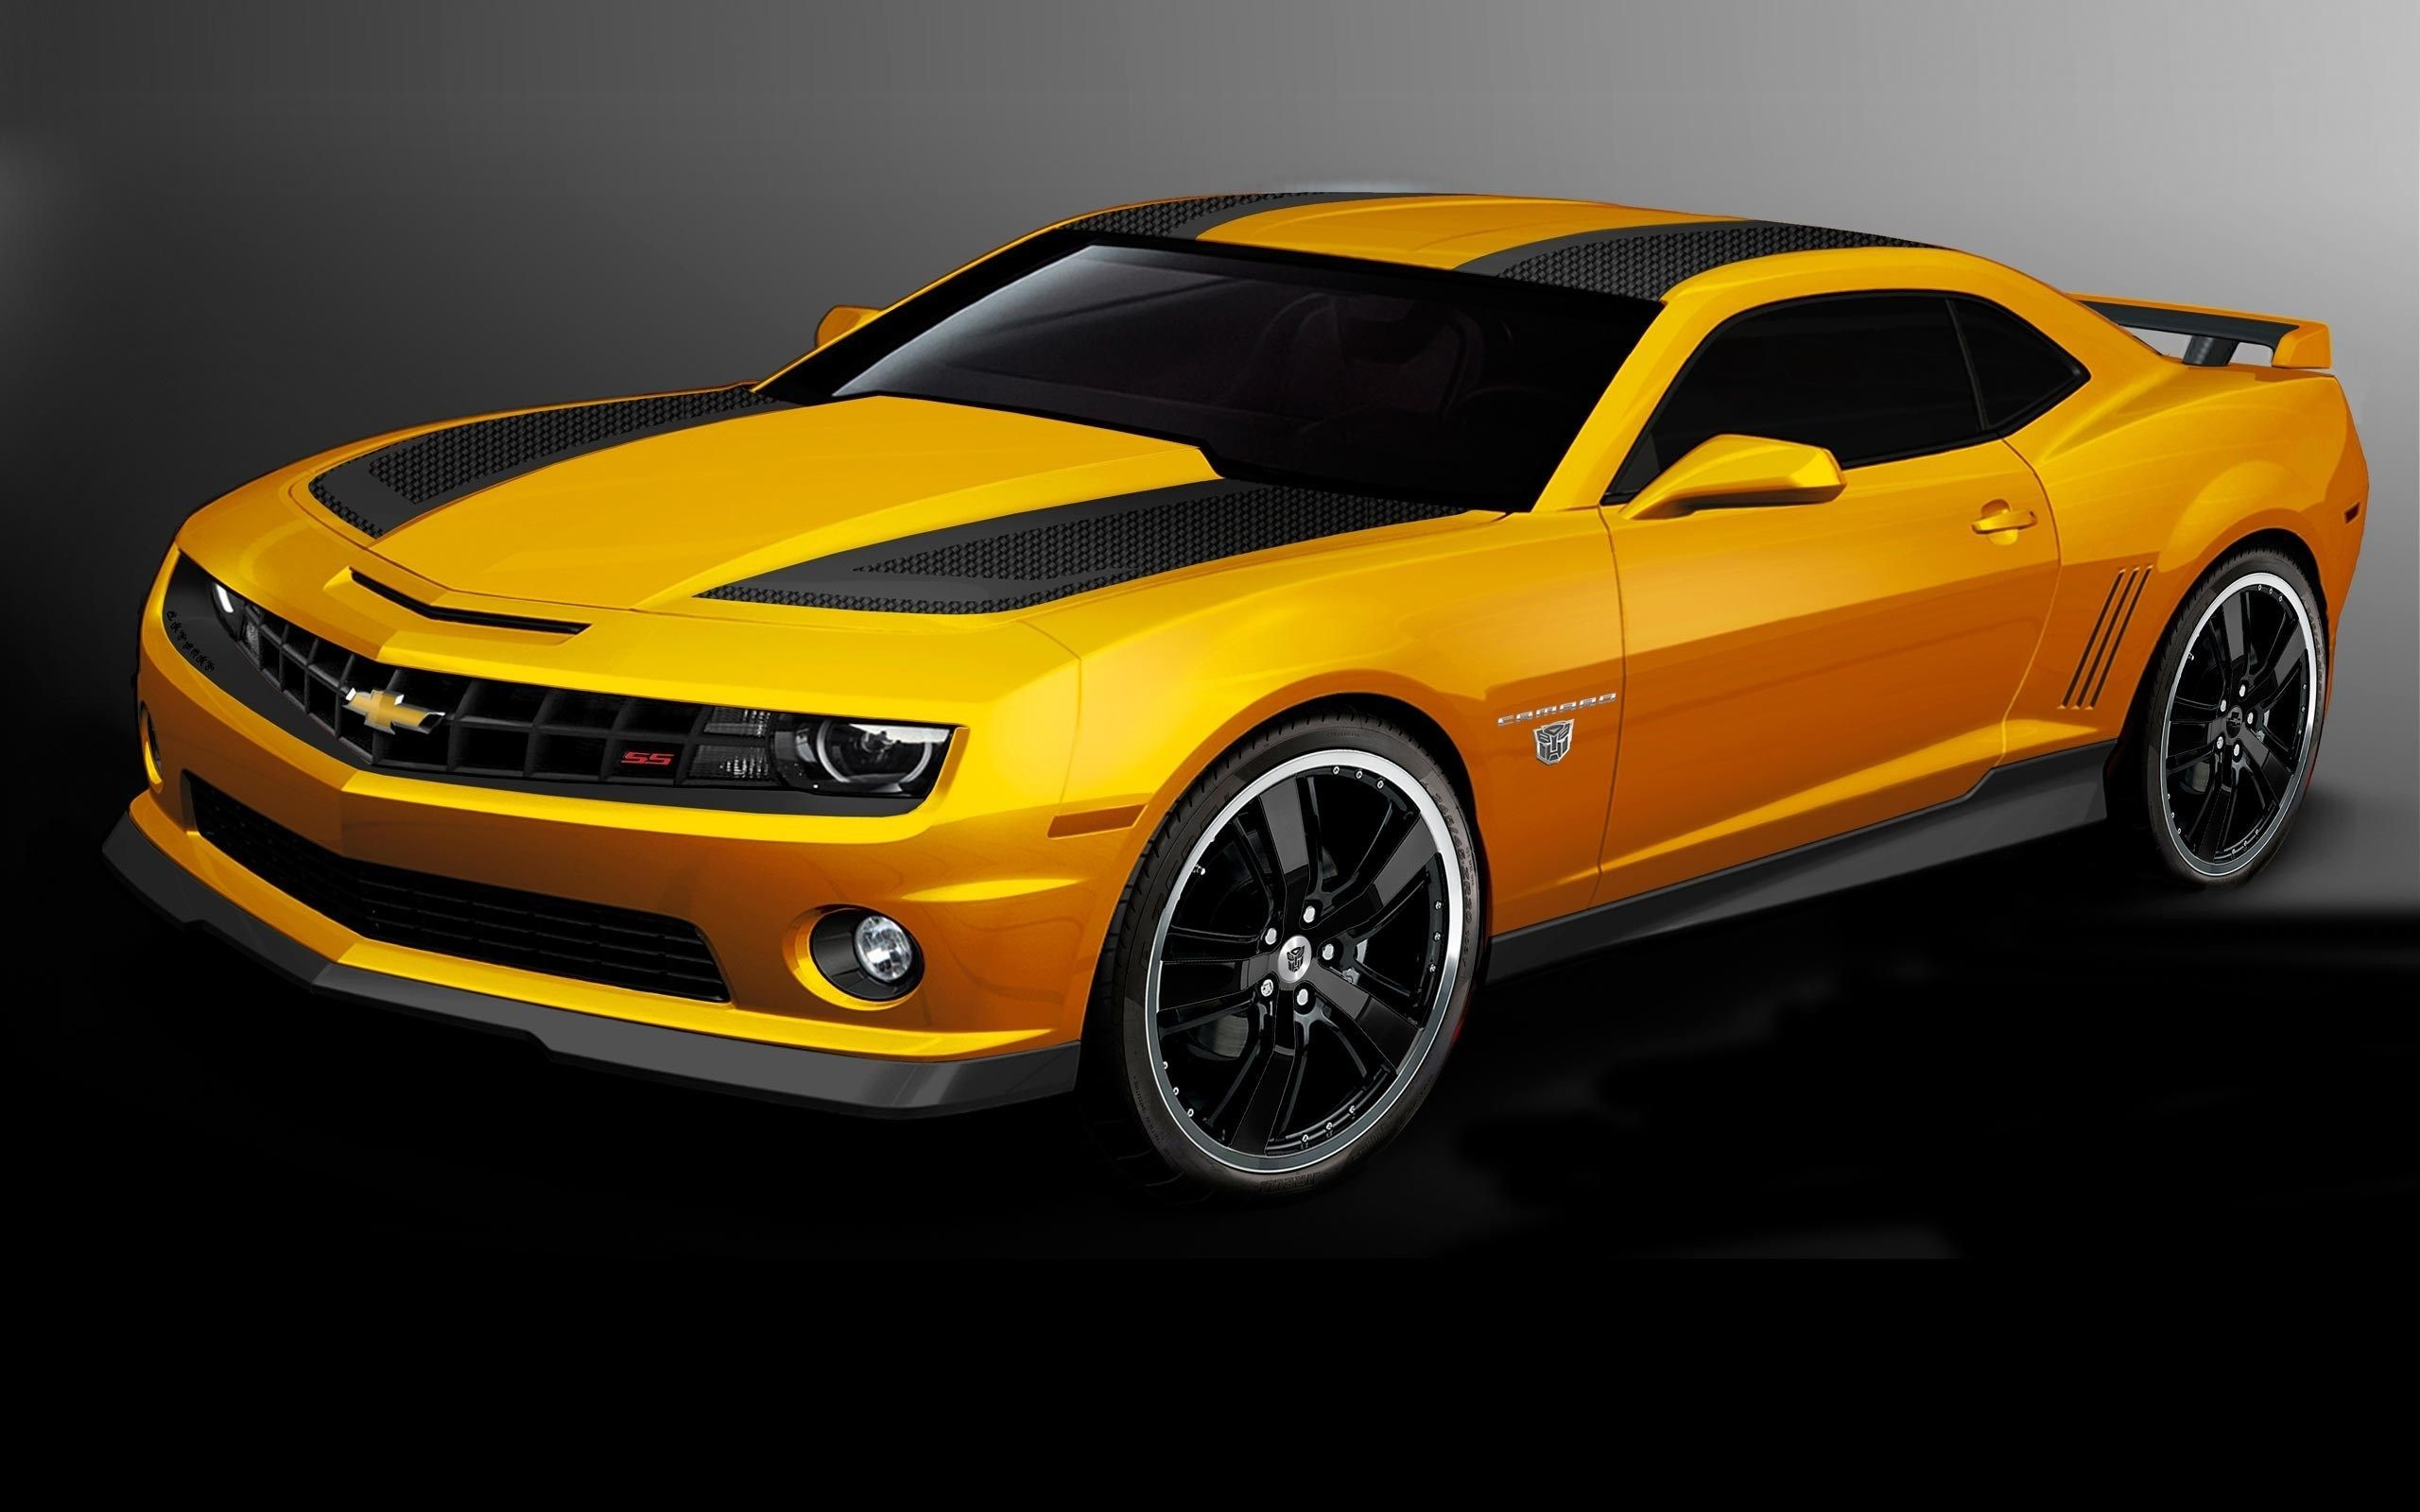 Res: 2560x1600, car camaro bumblebee fast cool wallpapers 1600x2560